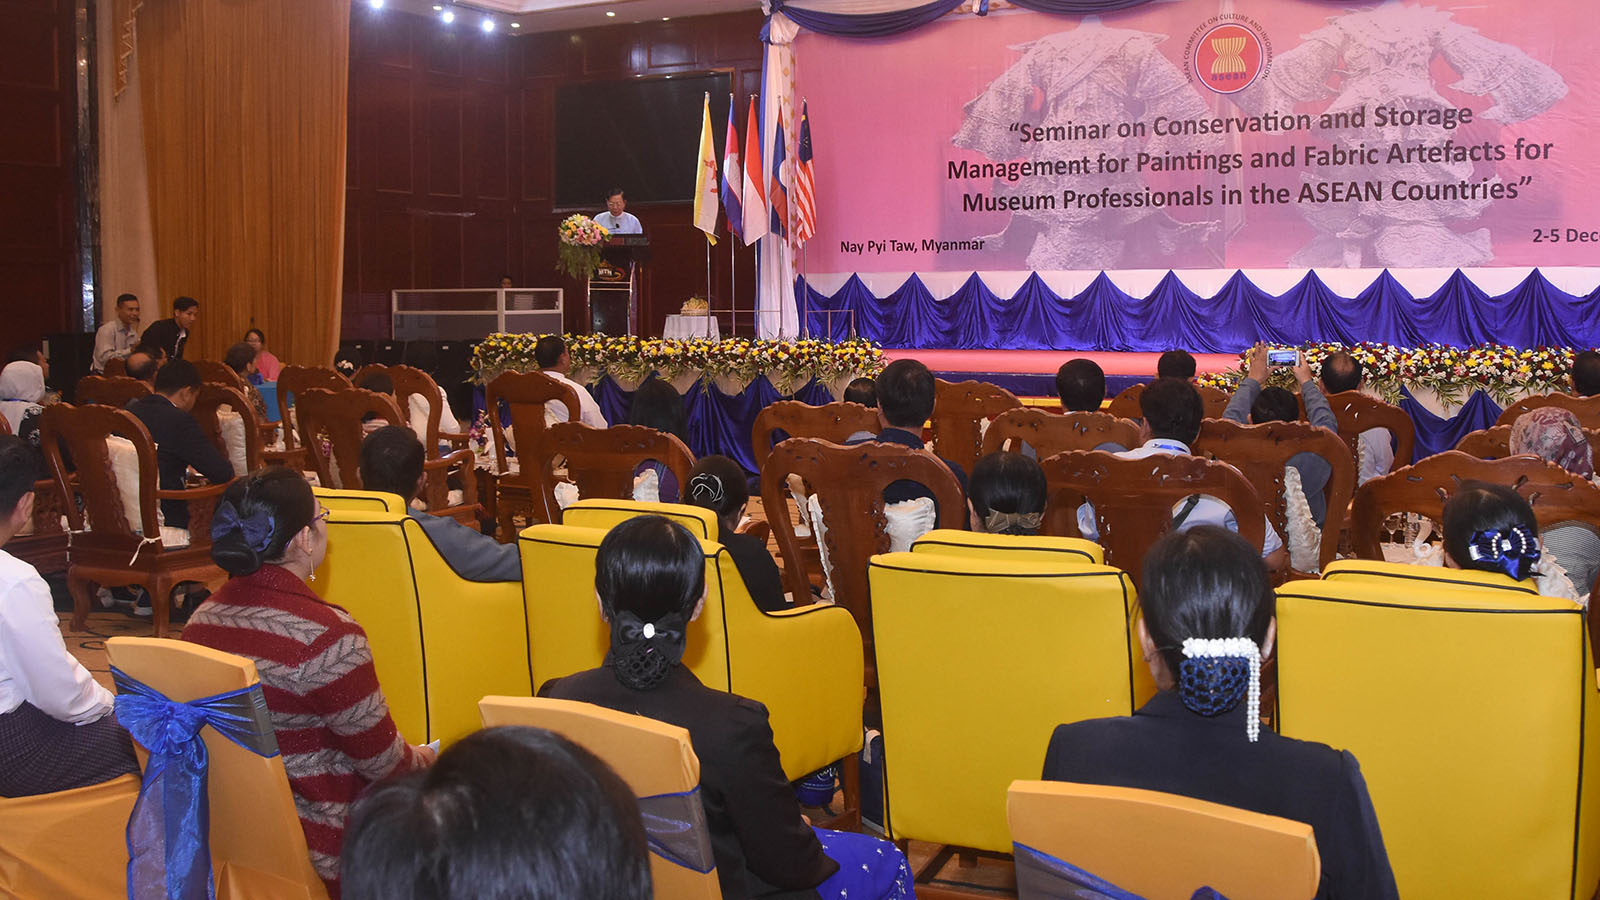 Union Minister Thura U Aung Ko delivers the address at the Seminar on Conservaton and Storage Management for Paintings and  Fabric Artefacts. Photo: MNA